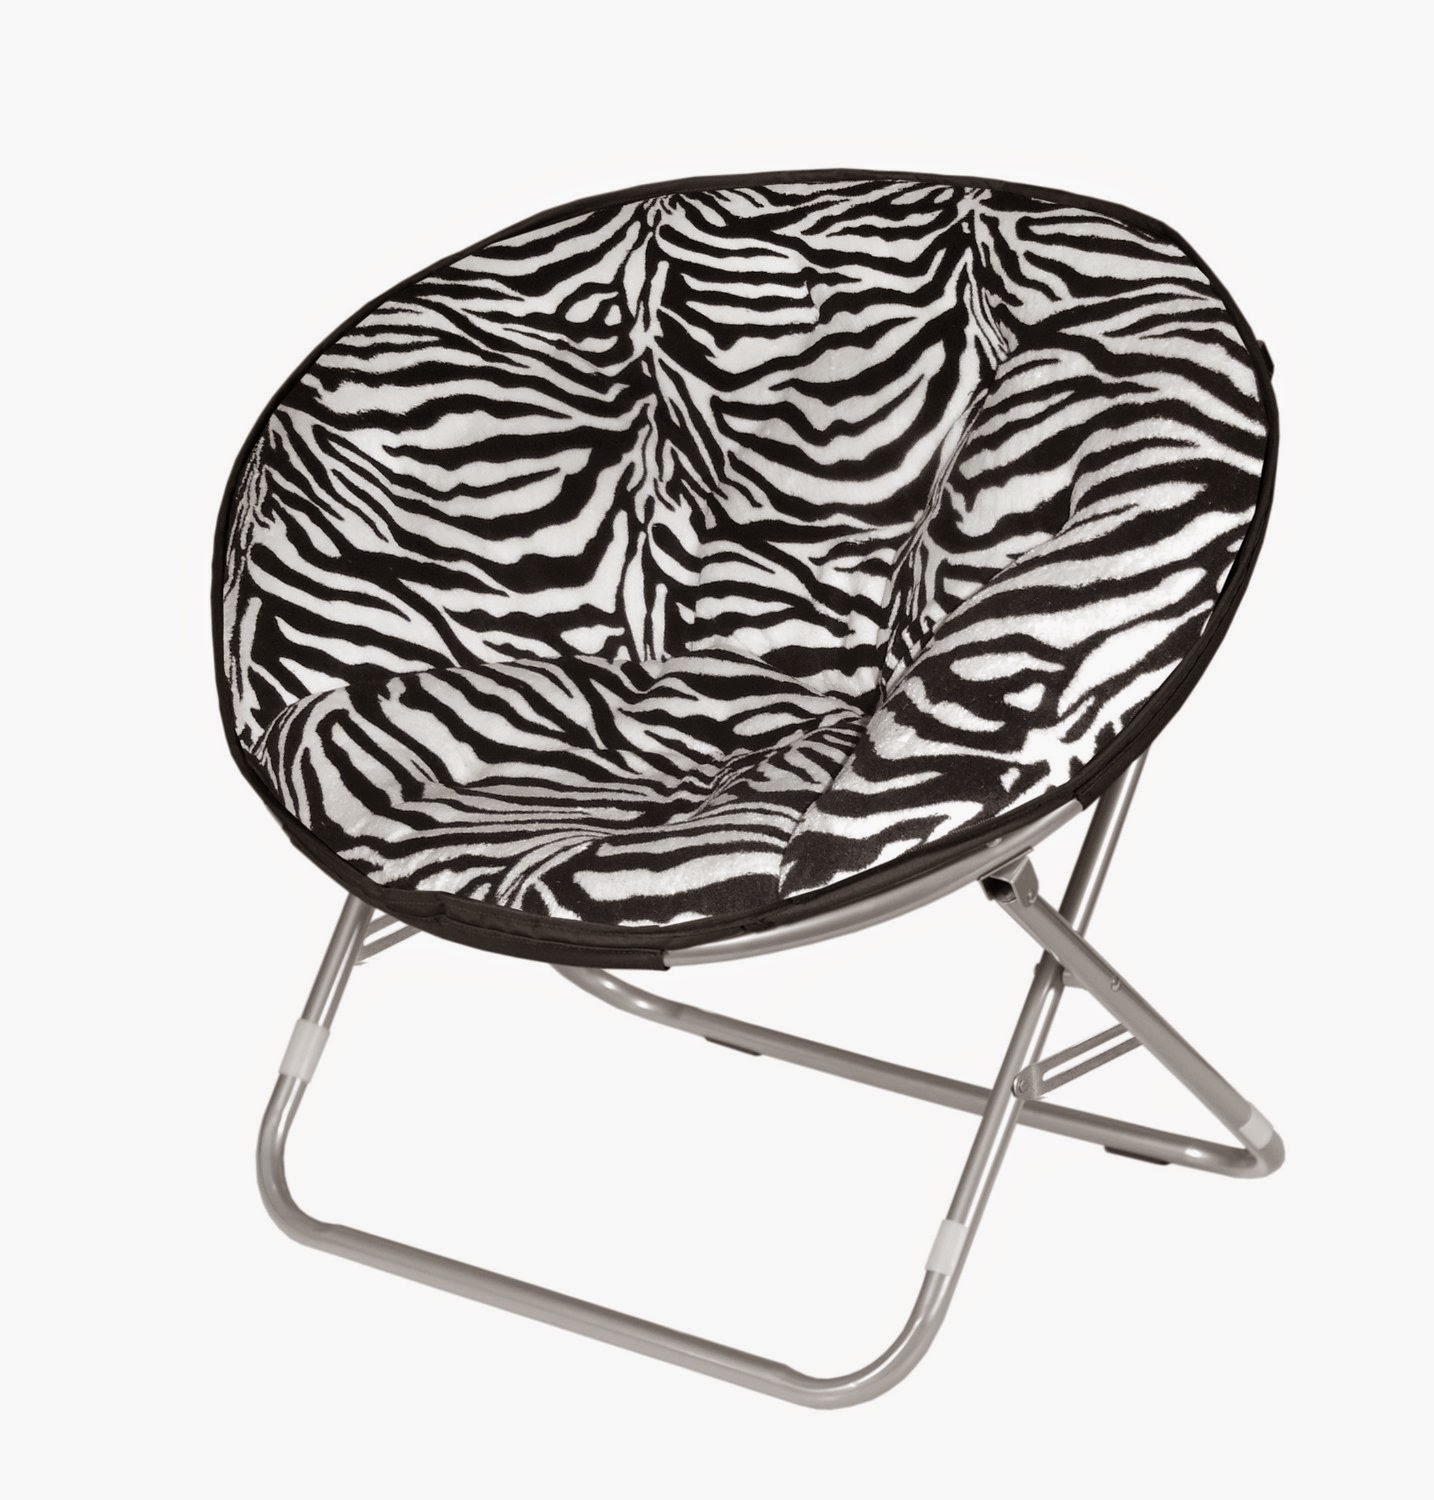 oversized saucer chair target warren platner theimaginationnook writing station with the daily 5